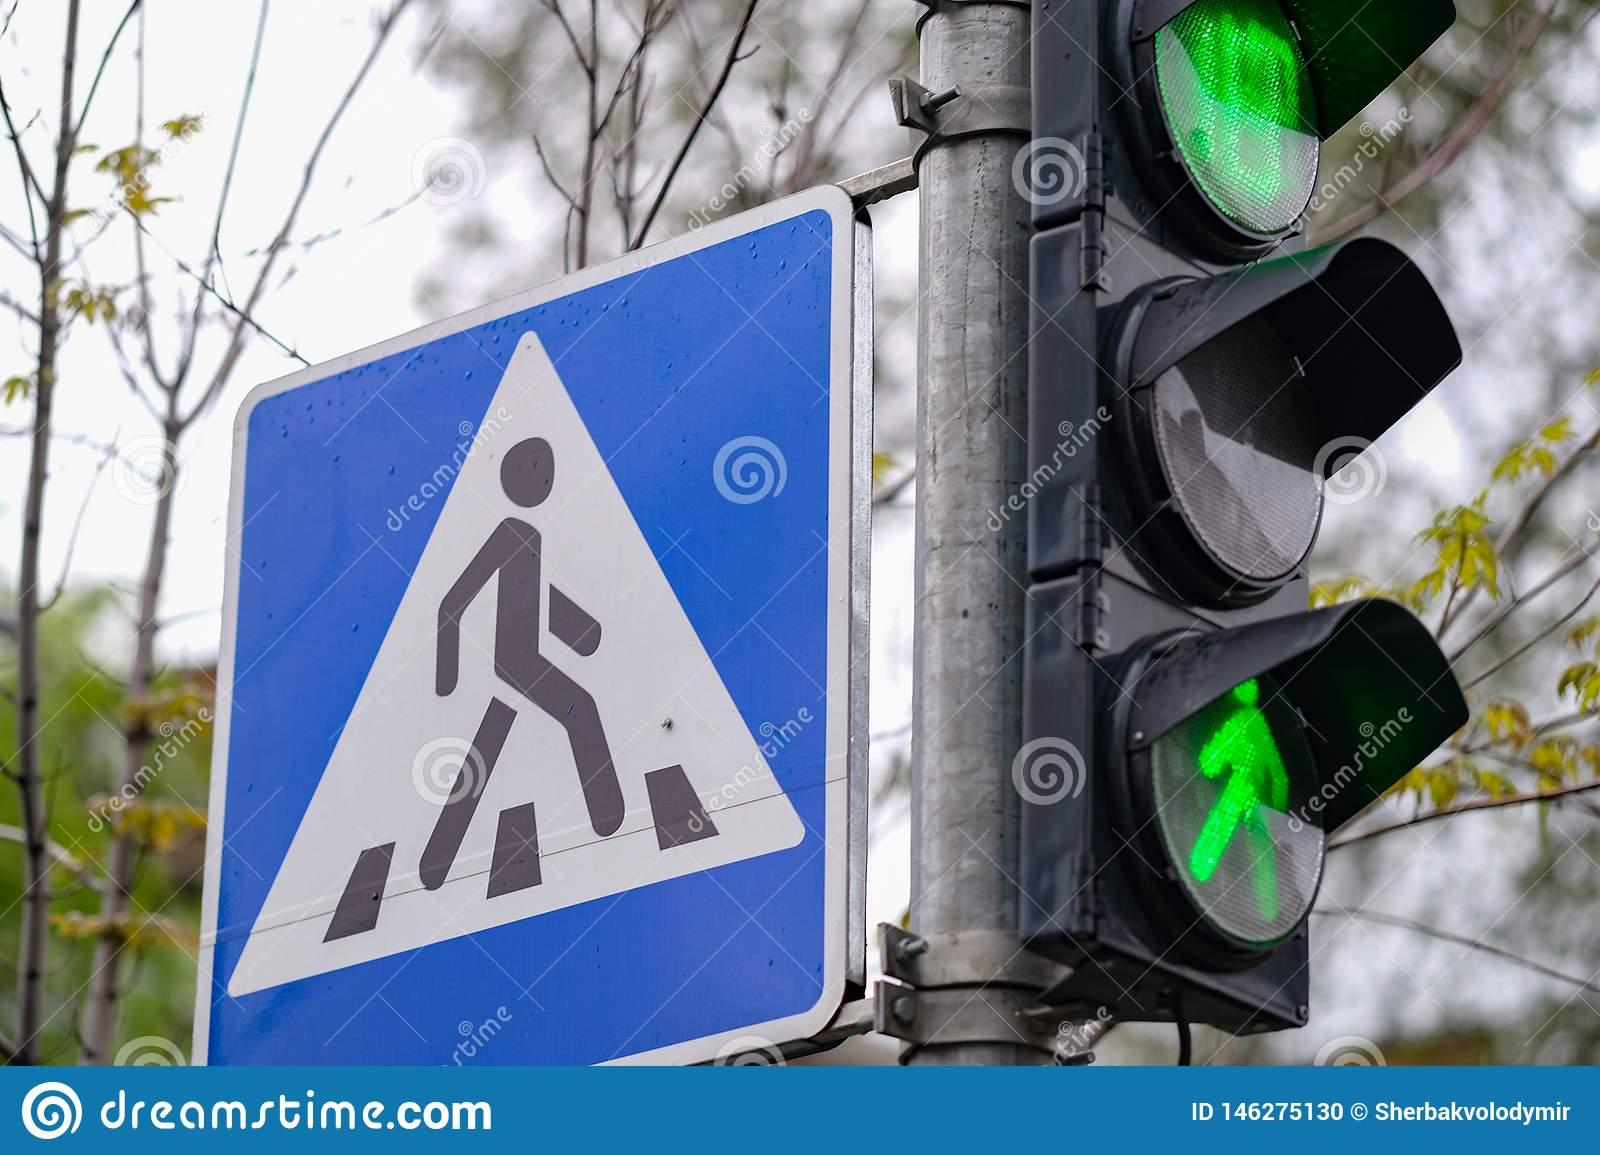 Traffic lights. green color and pedestrian crossing sign in a city